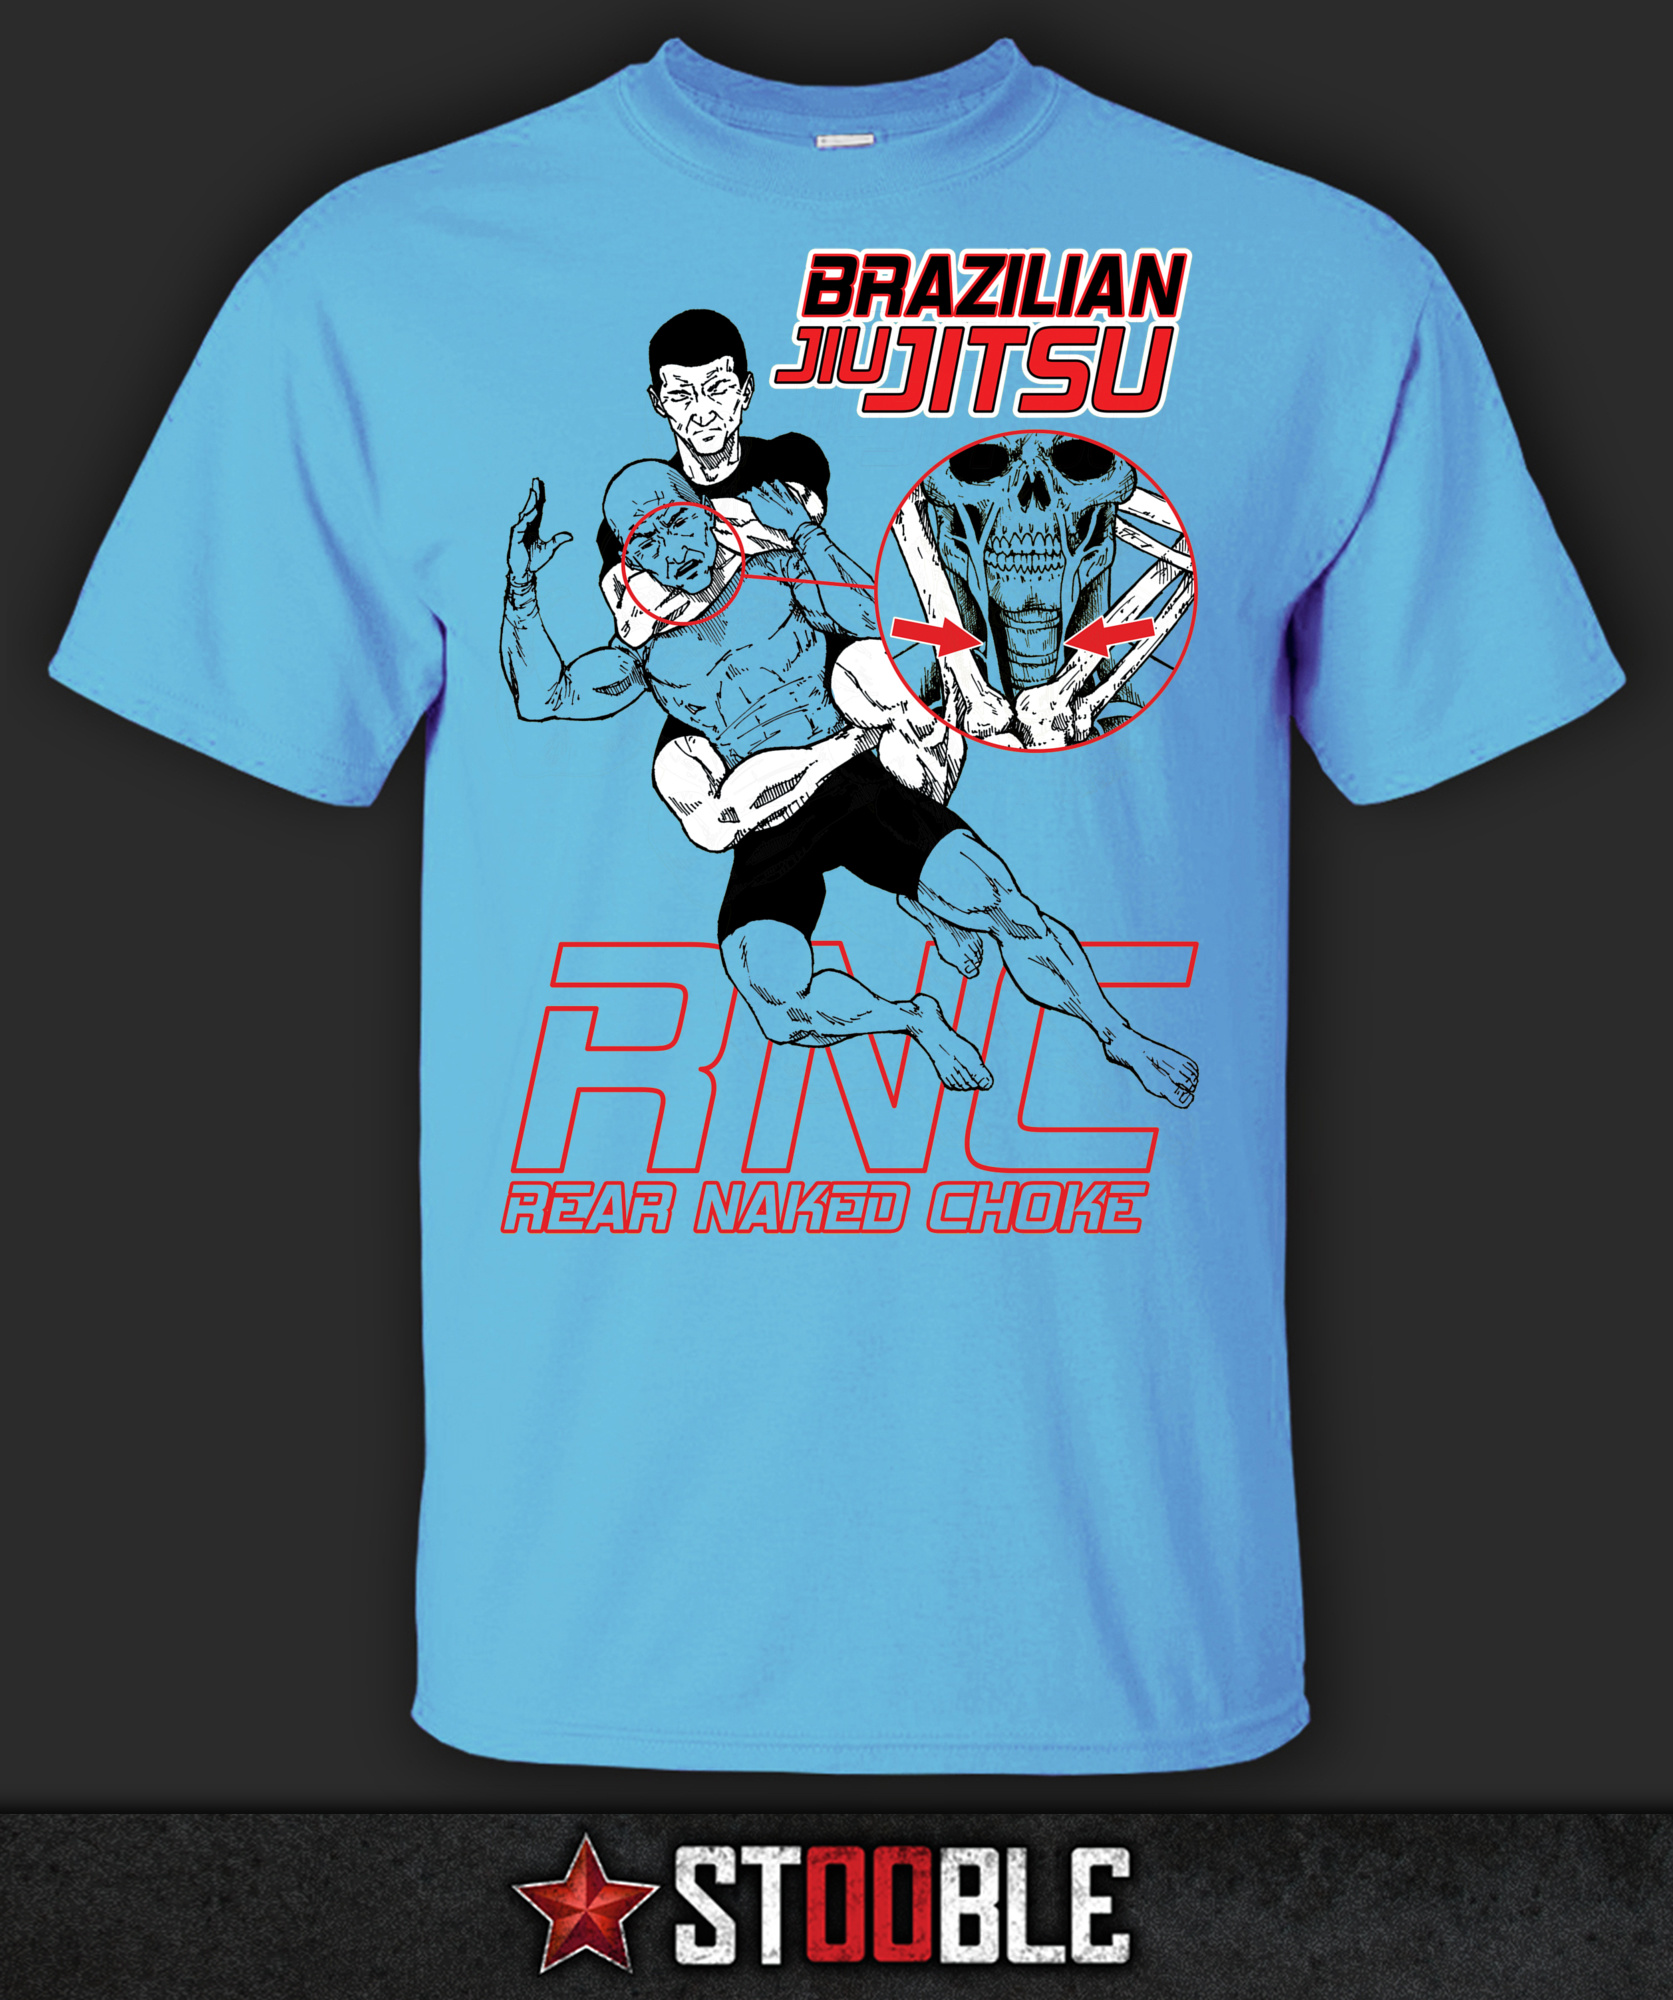 BJJ Brazilian Jiu Jitsu Choke T-Shirt - New - Direct from Manufacturer